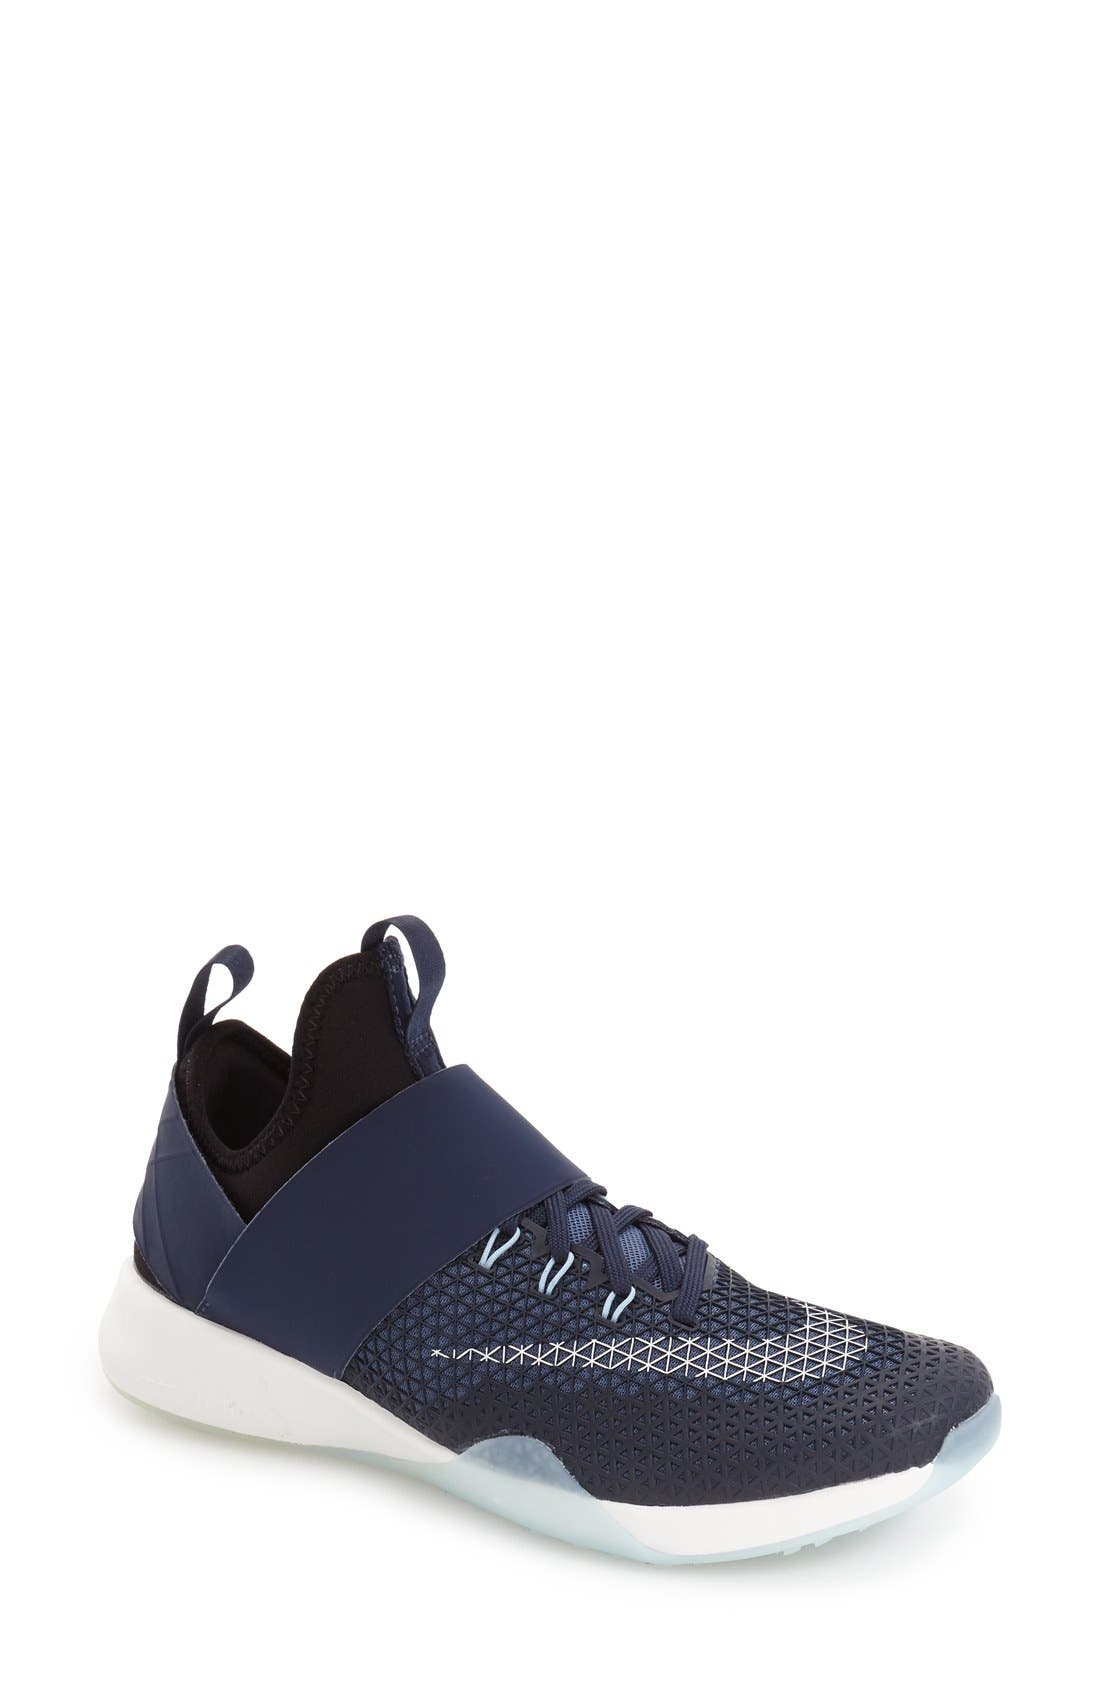 'Air Zoom Strong' Training Shoe,                             Main thumbnail 1, color,                             Obsidian/ White/ Ocean